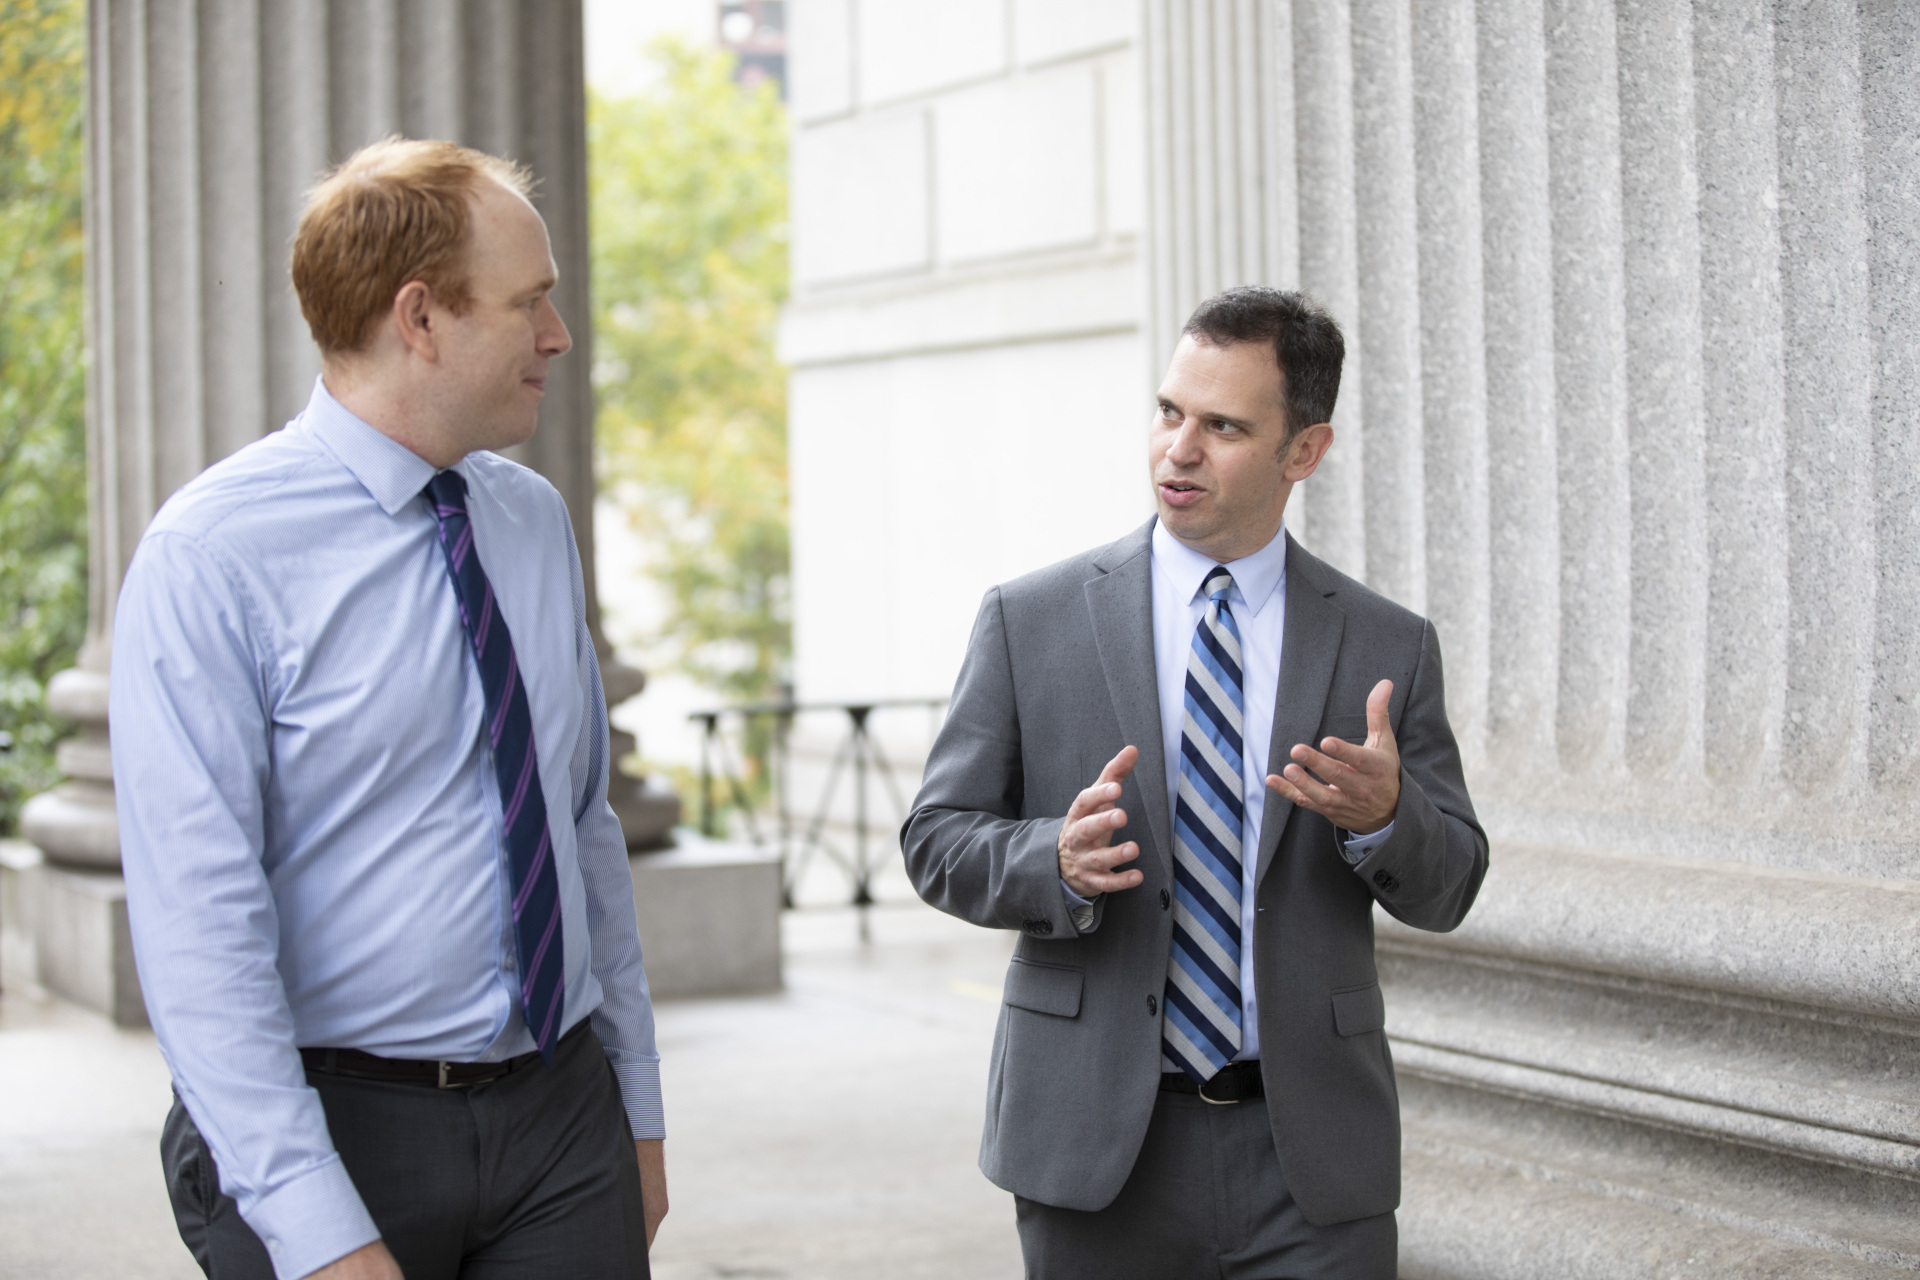 Dan Quart speaking with a lawyer at the courthouse